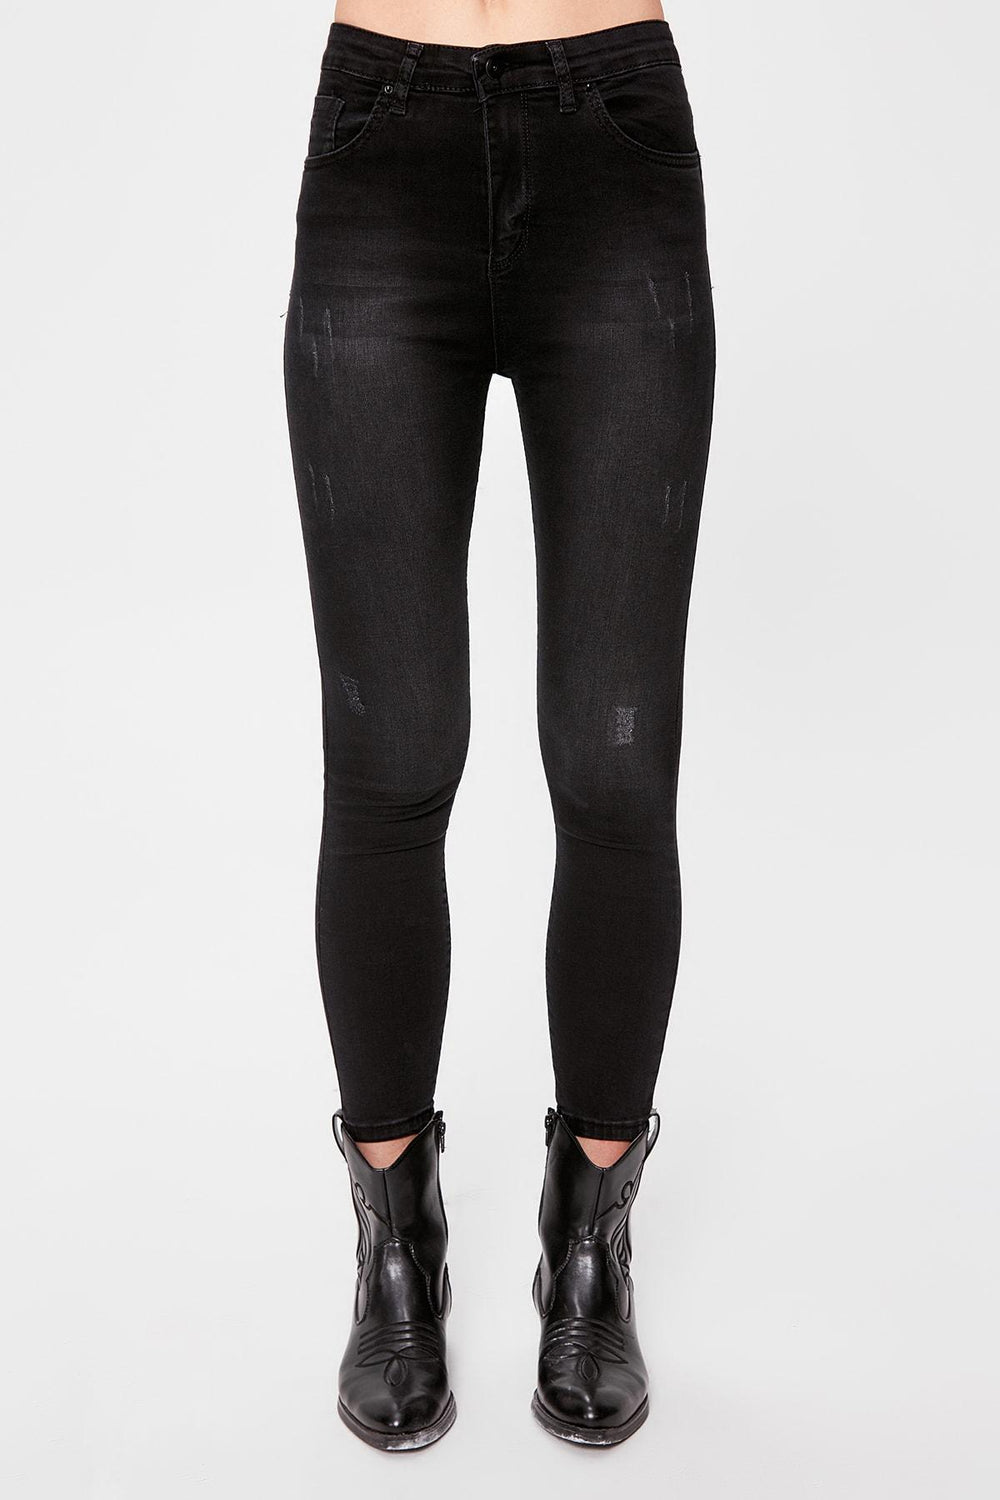 Miss Zut Miss Zut Black Yu0131pratmalu0131 Normal Waist Skinny Jeans Miss Zut &CO